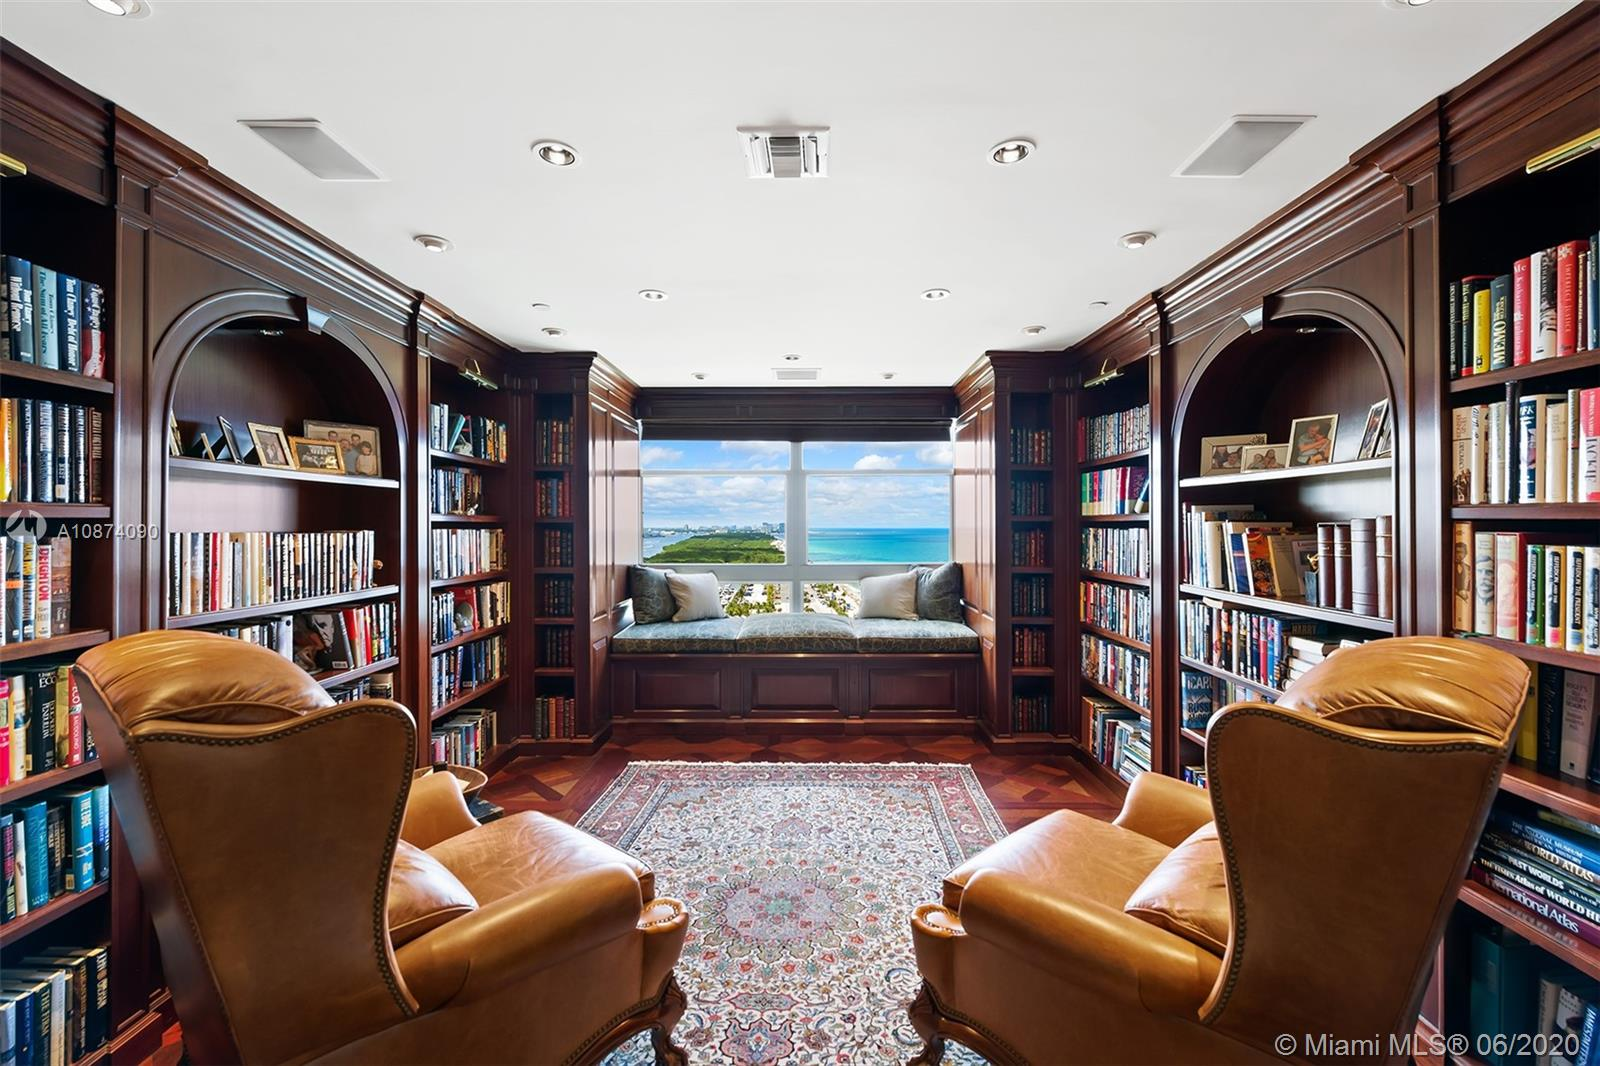 Photo of 6051 Ocean Dr #PH5, Hollywood, Florida, 33019 - Library upstairs with window reading nook